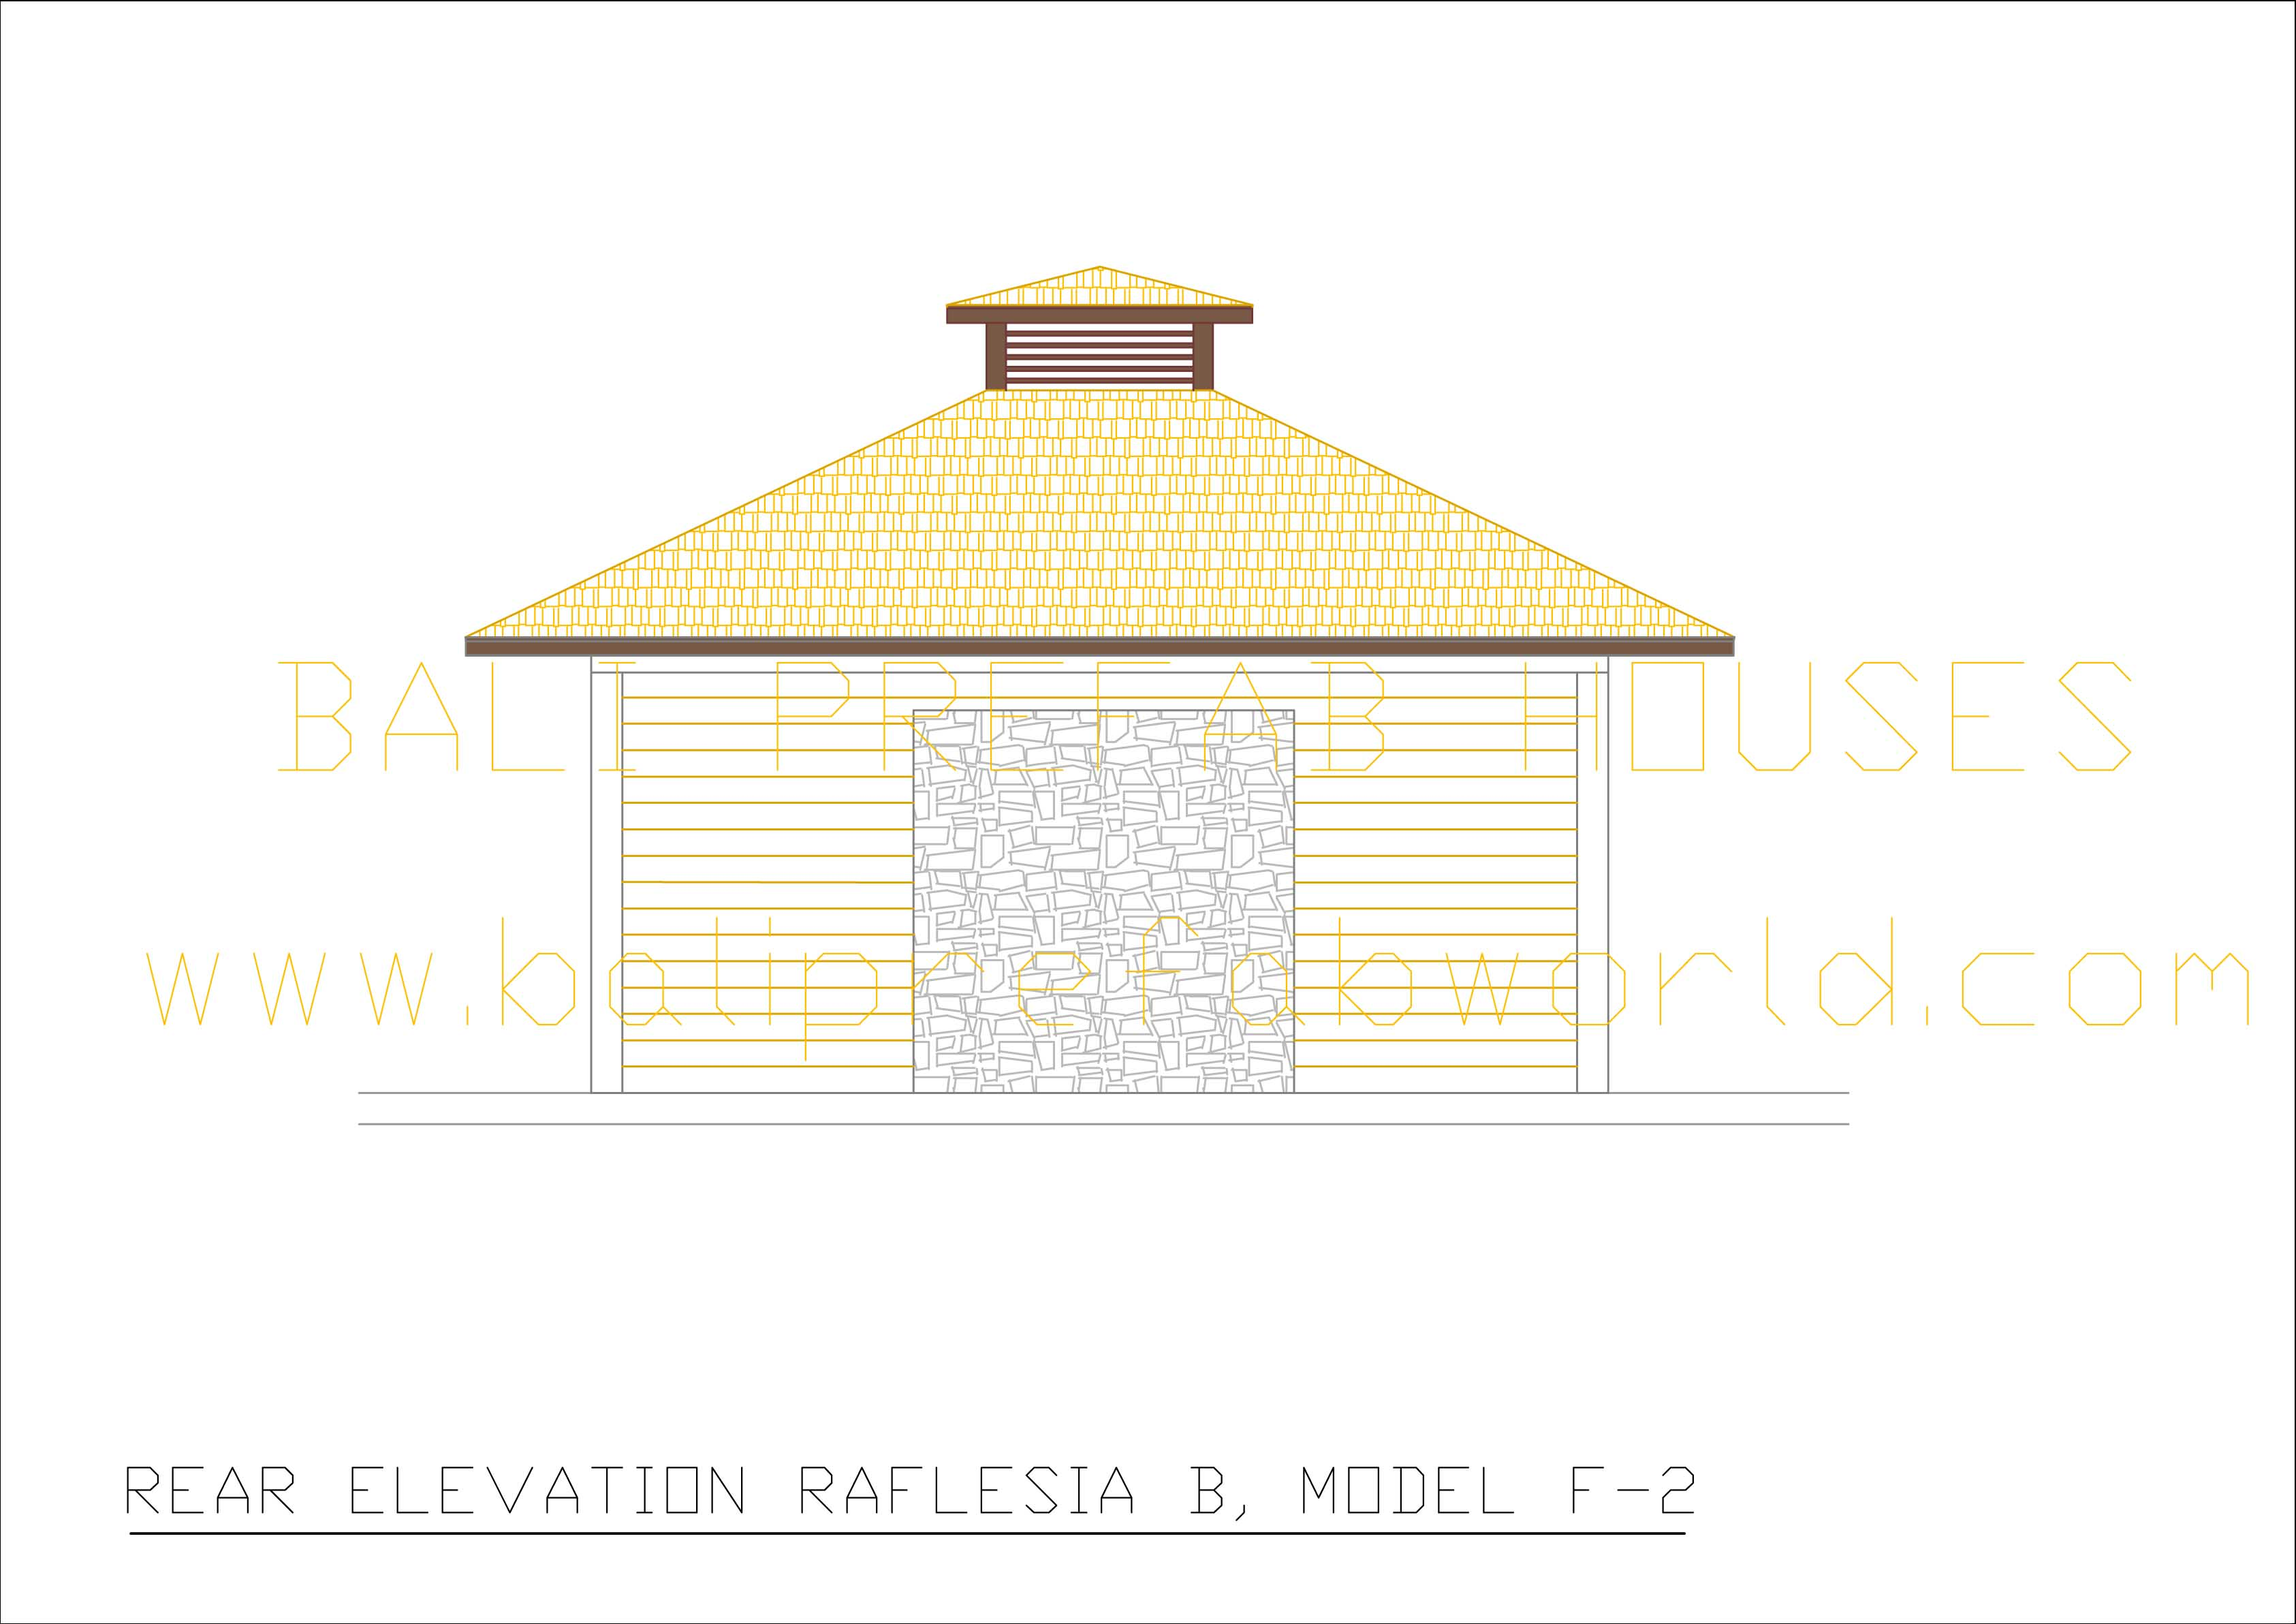 Raflesia-B rear elevation